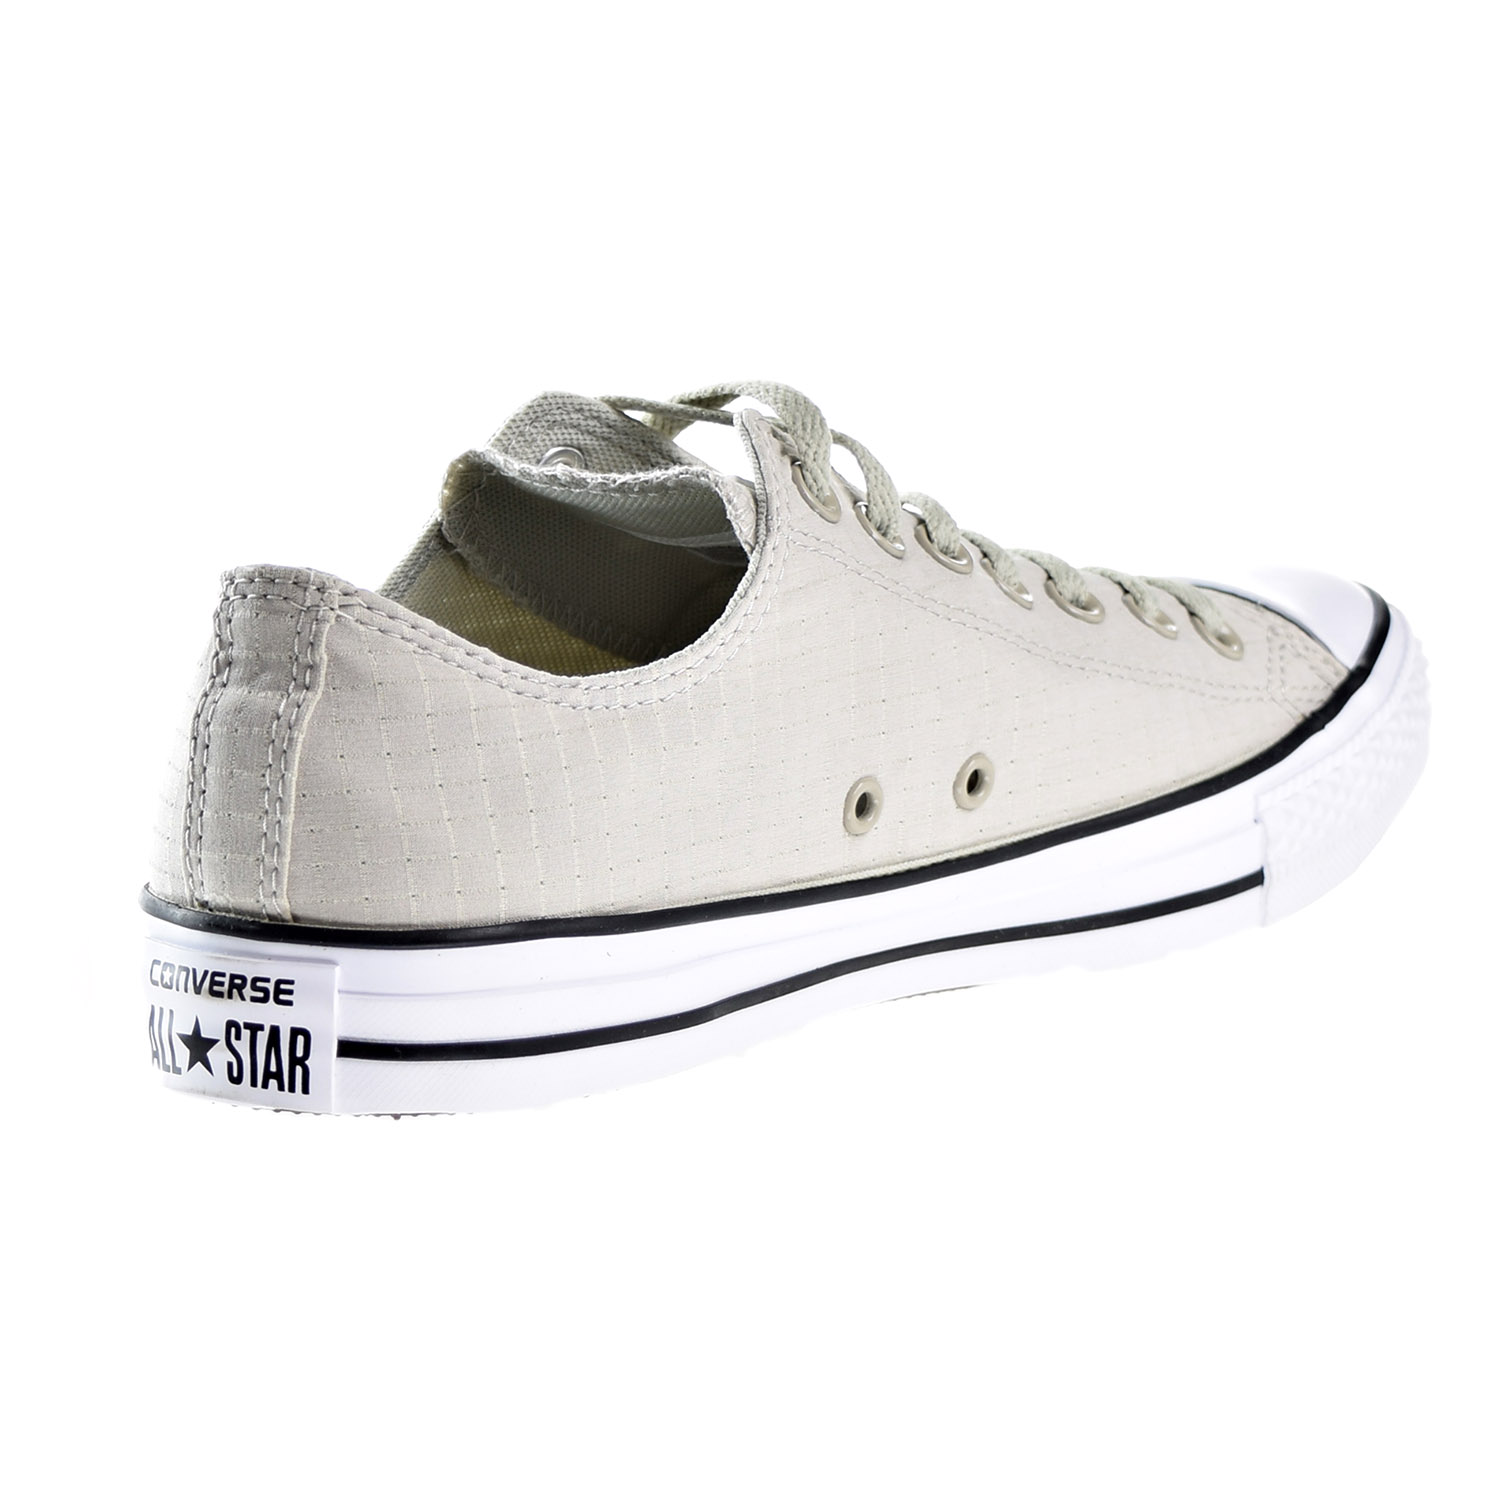 Converse Chuck Taylor All Star OX Unisex Shoes Light Surplus/White/Black155443f